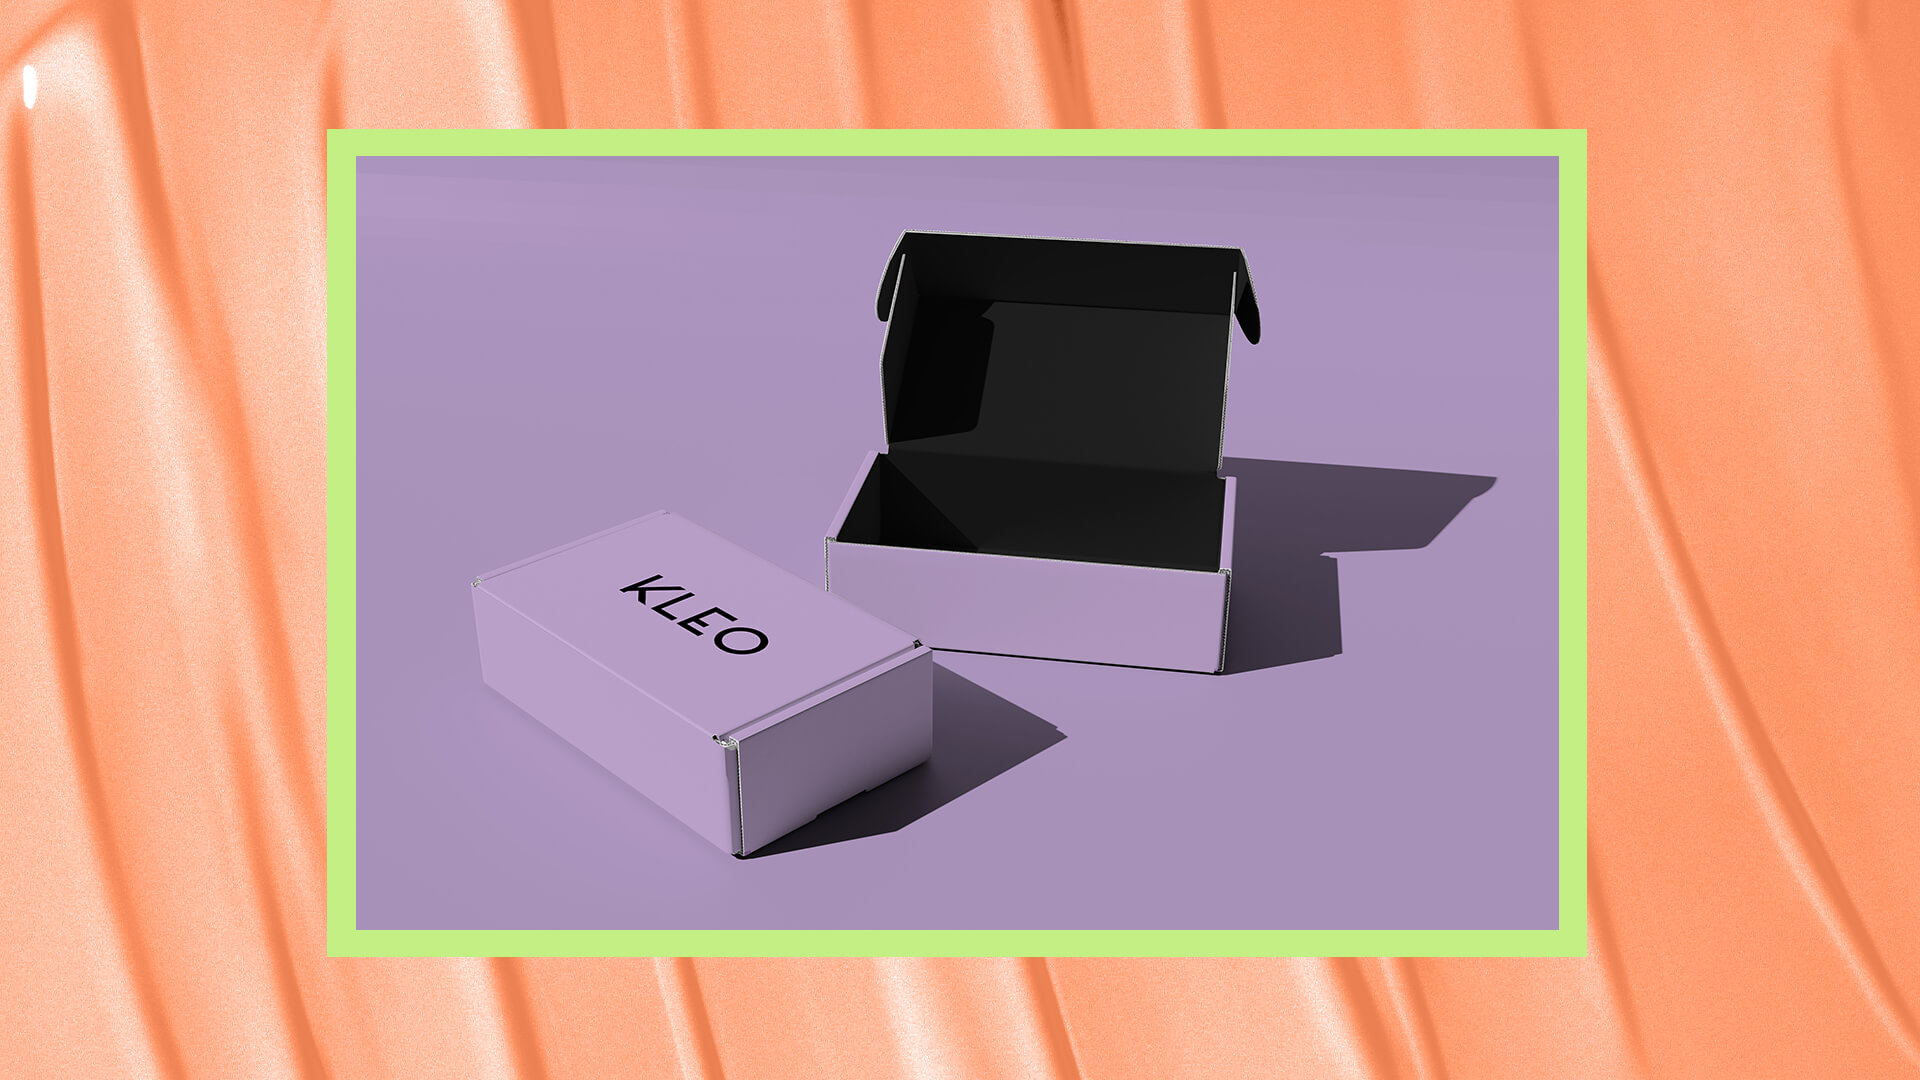 Student Concept for Brand and Packaging Design for Kleo Skin Care